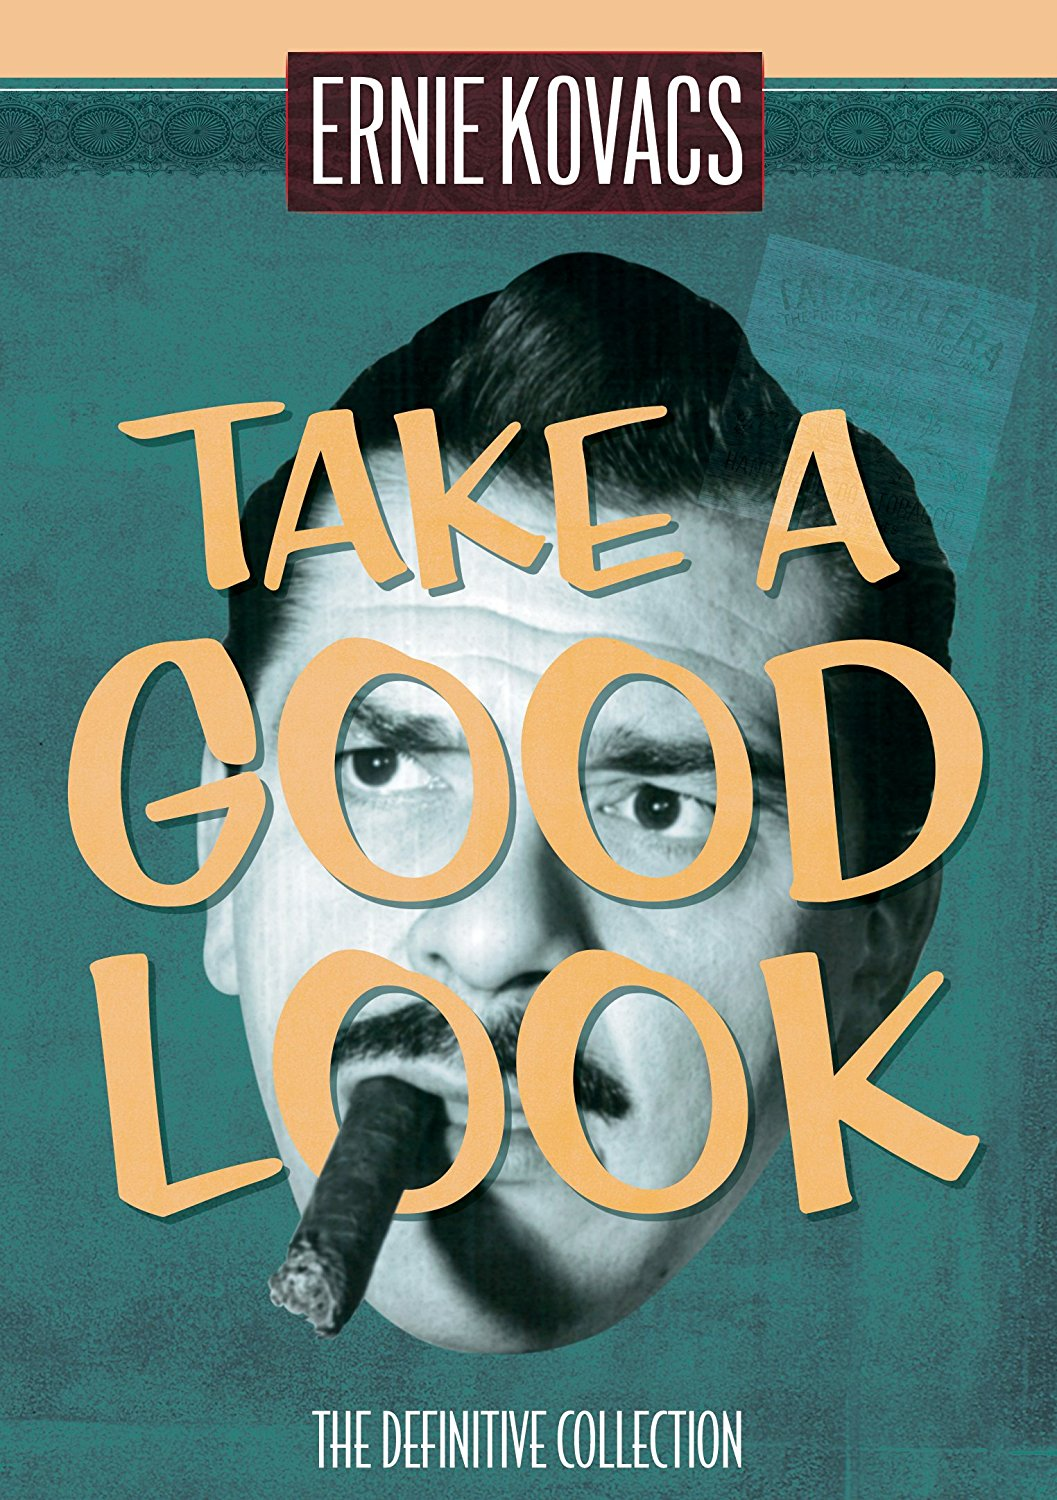 COMEDY NEWS: Ernie Kovacs: Take A Good Look – The Definitive Collection To Be Released By Shout! Factory On October 17